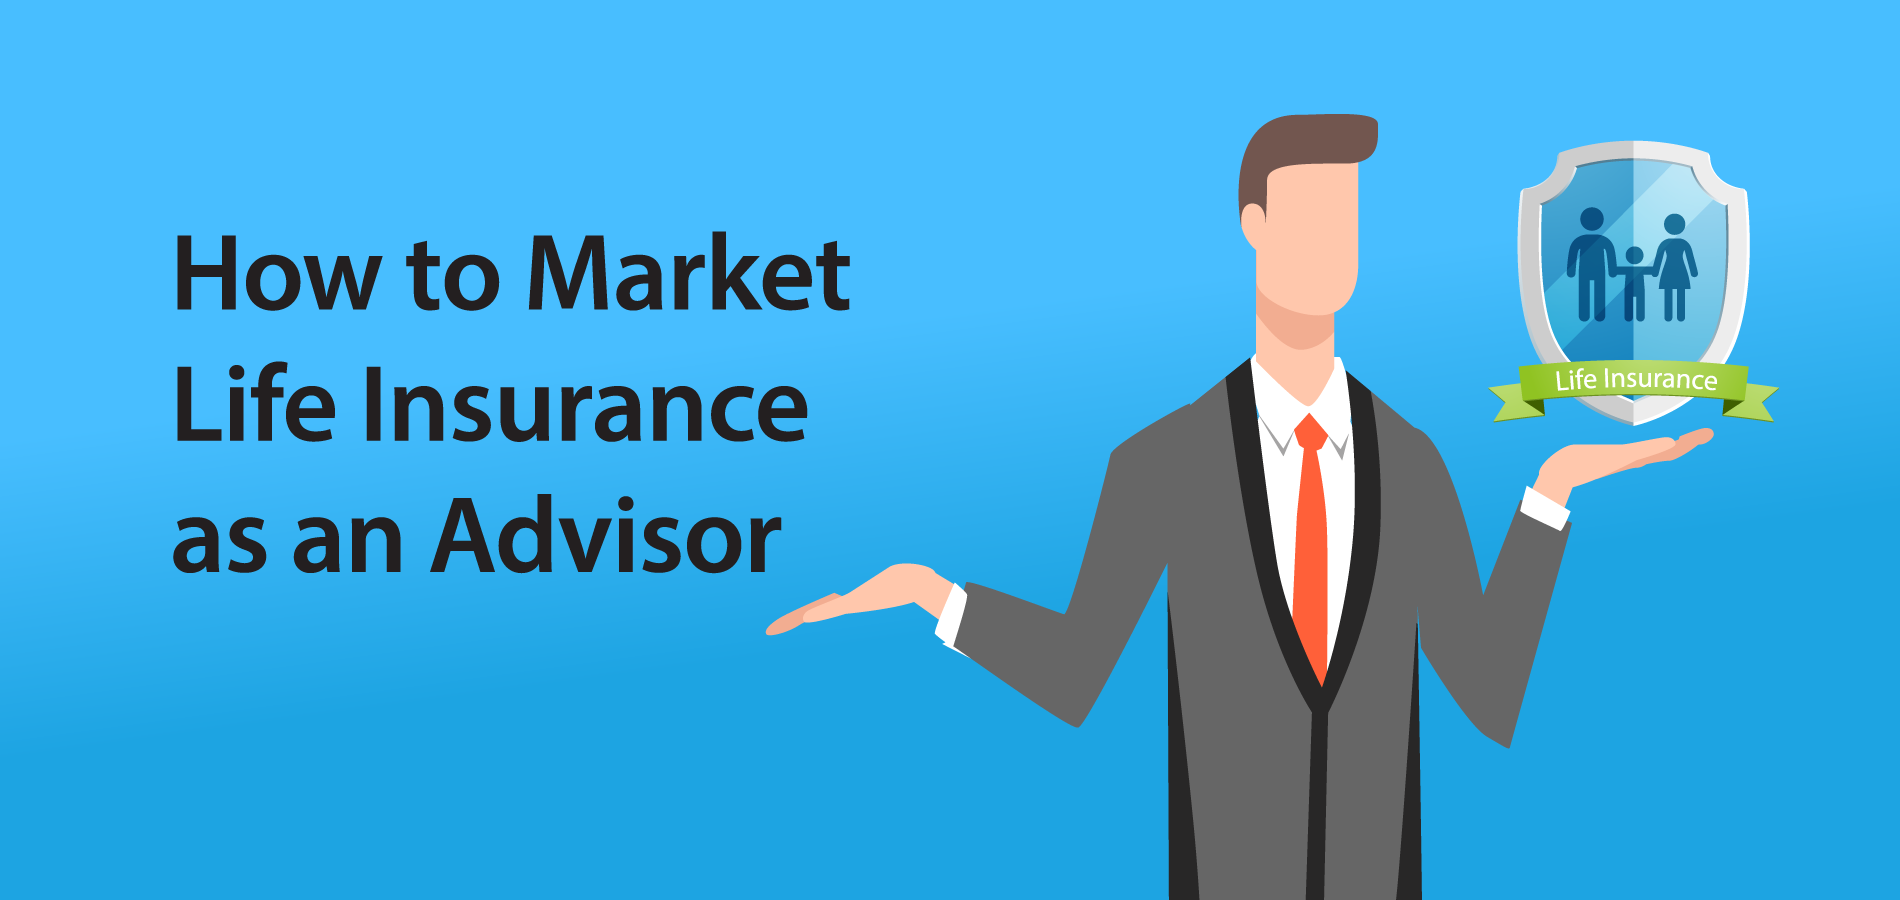 How to Market Life Insurance as an Advisor